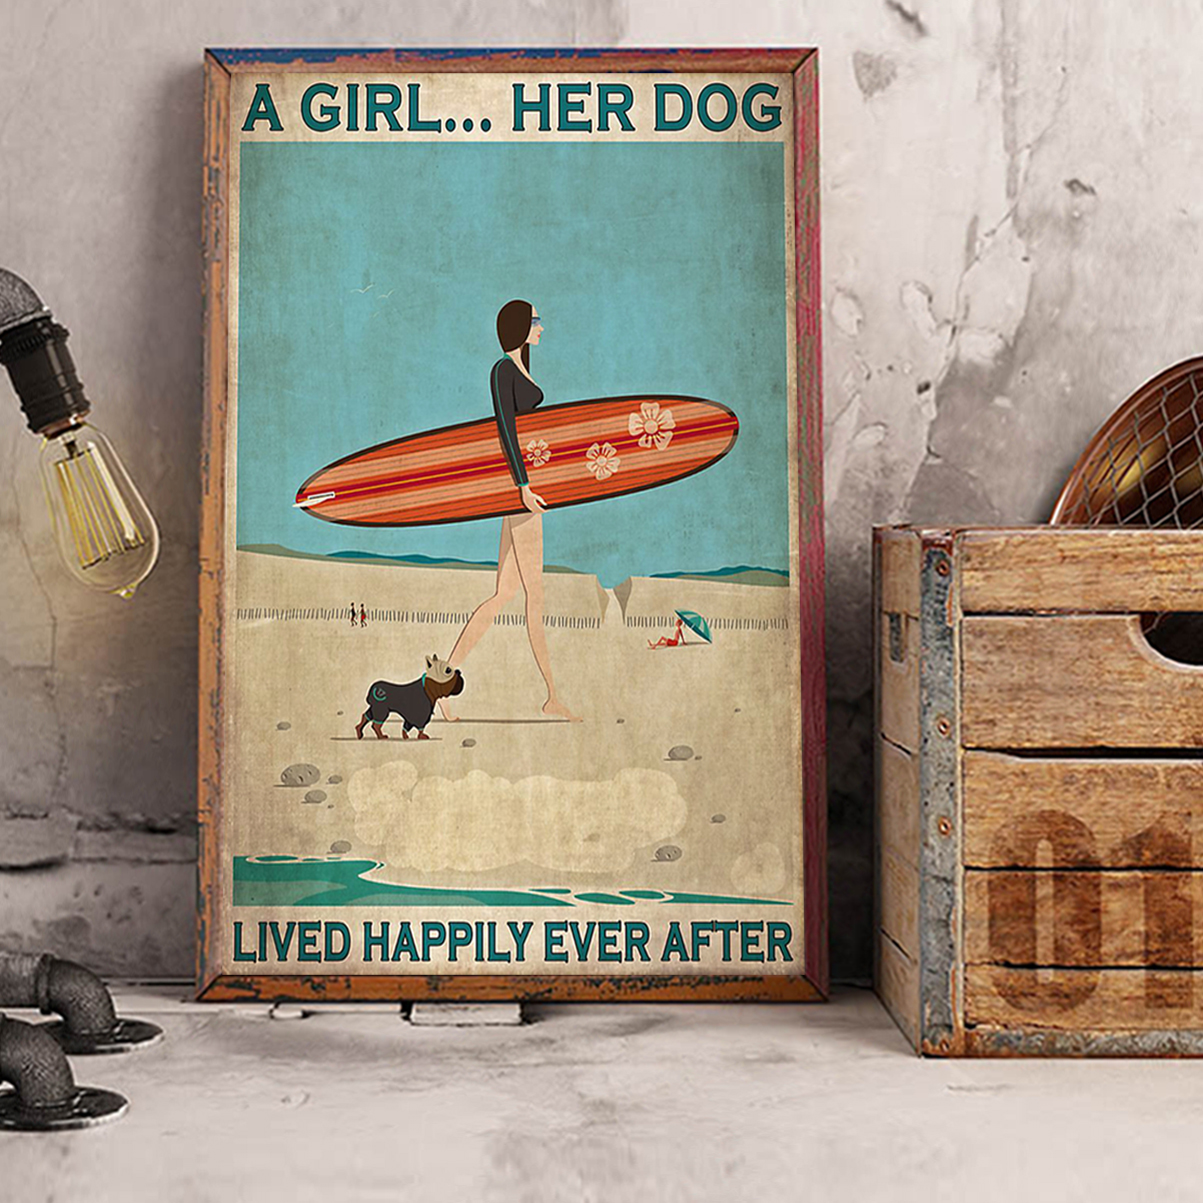 Surfing a girl her dog lived happily ever after poster A2